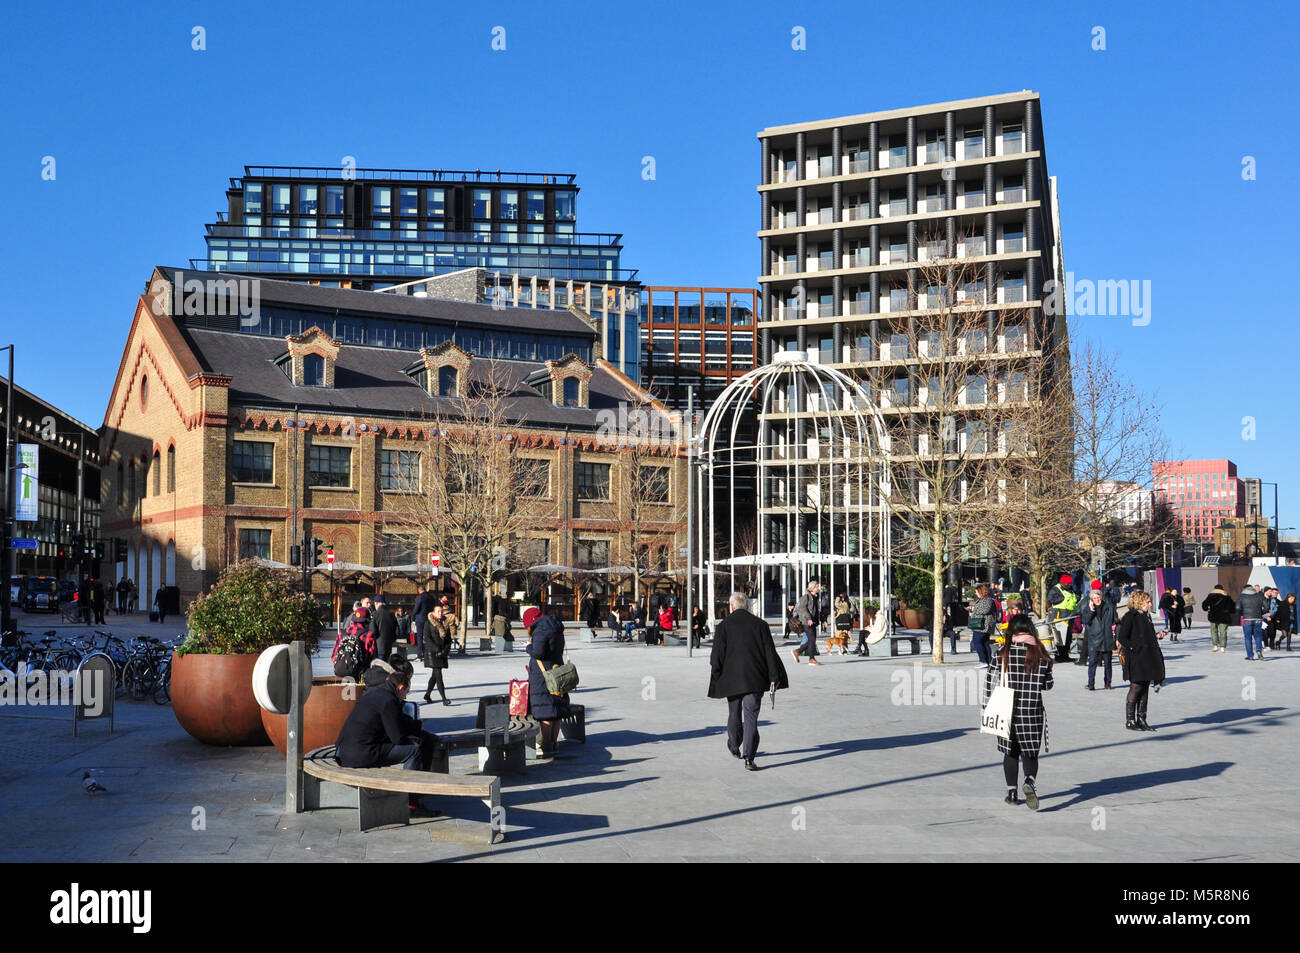 Newly redeveloped area of Battle Bridge Place and King's Boulevard, between King's Cross and St Pancras - Stock Image